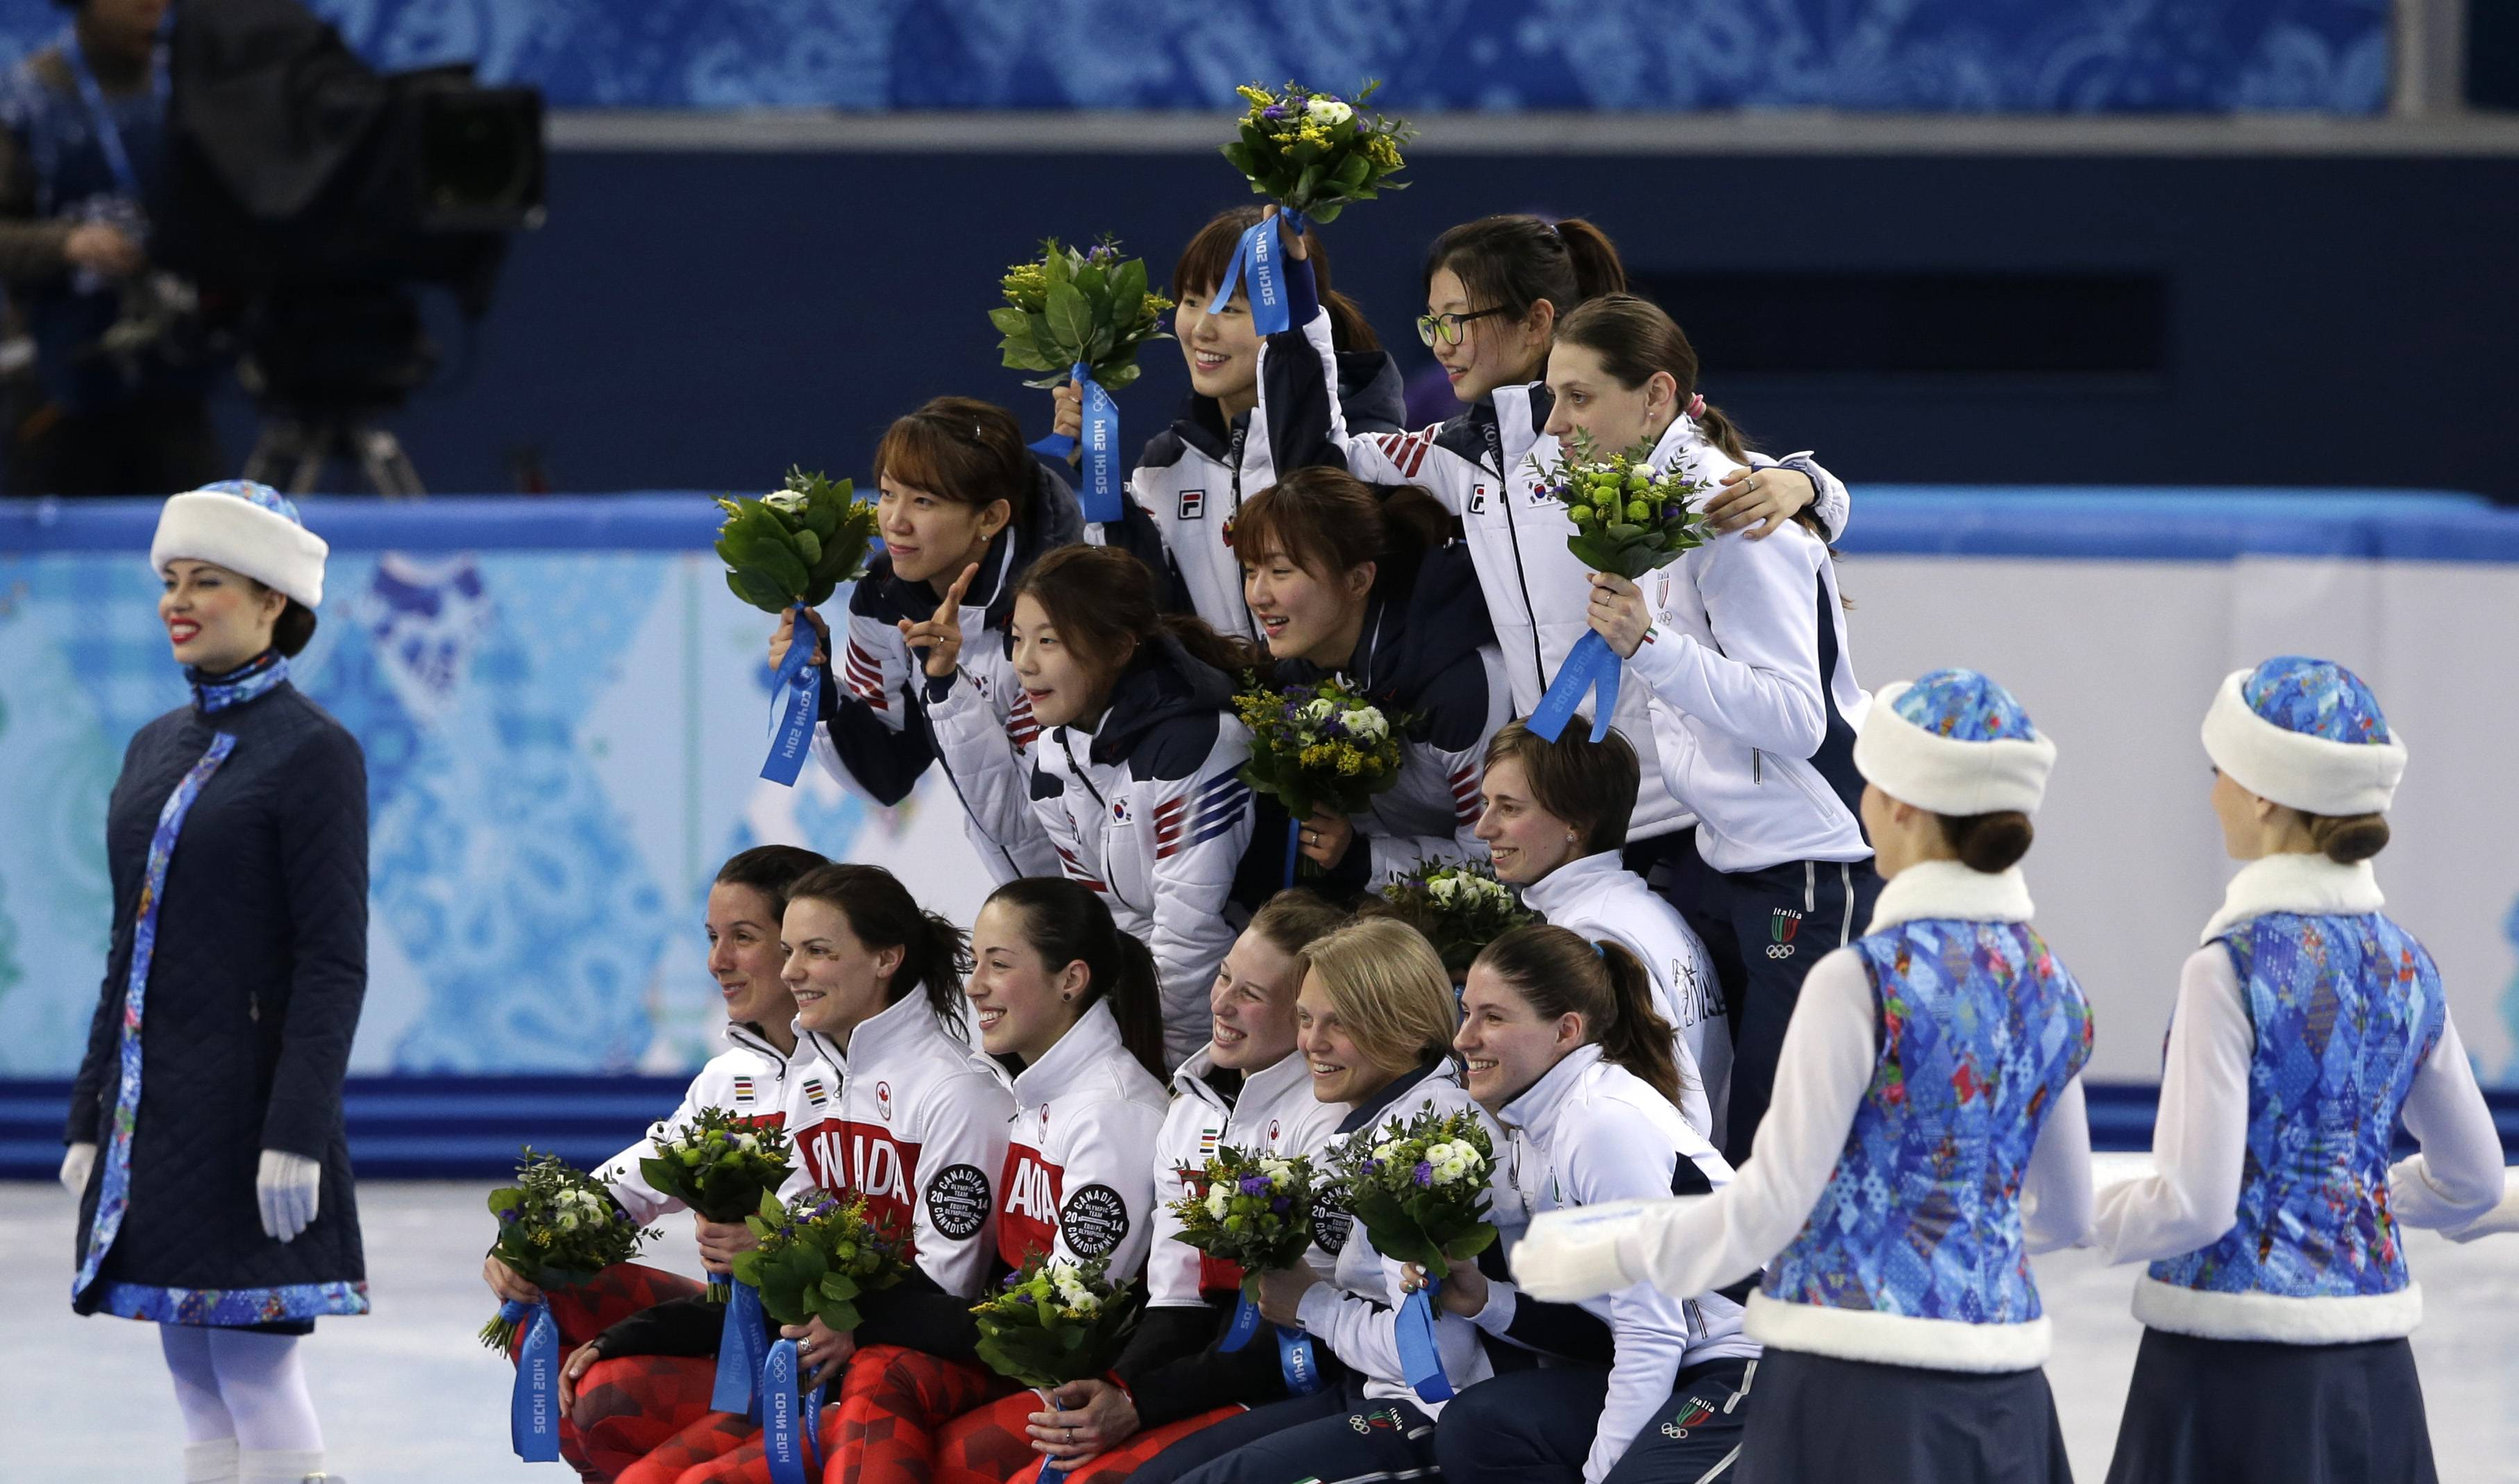 The South Korean team, top left, the Canadian team, front left, and the Italian team, top and bottom right, celebrate Tuesday during the flower ceremony for the women's 3000m short track speedskating relay final at the Iceberg Skating Palace during the 2014 Winter Olympics in Sochi, Russia. South Korea placed first, followed by Canada and Italy.